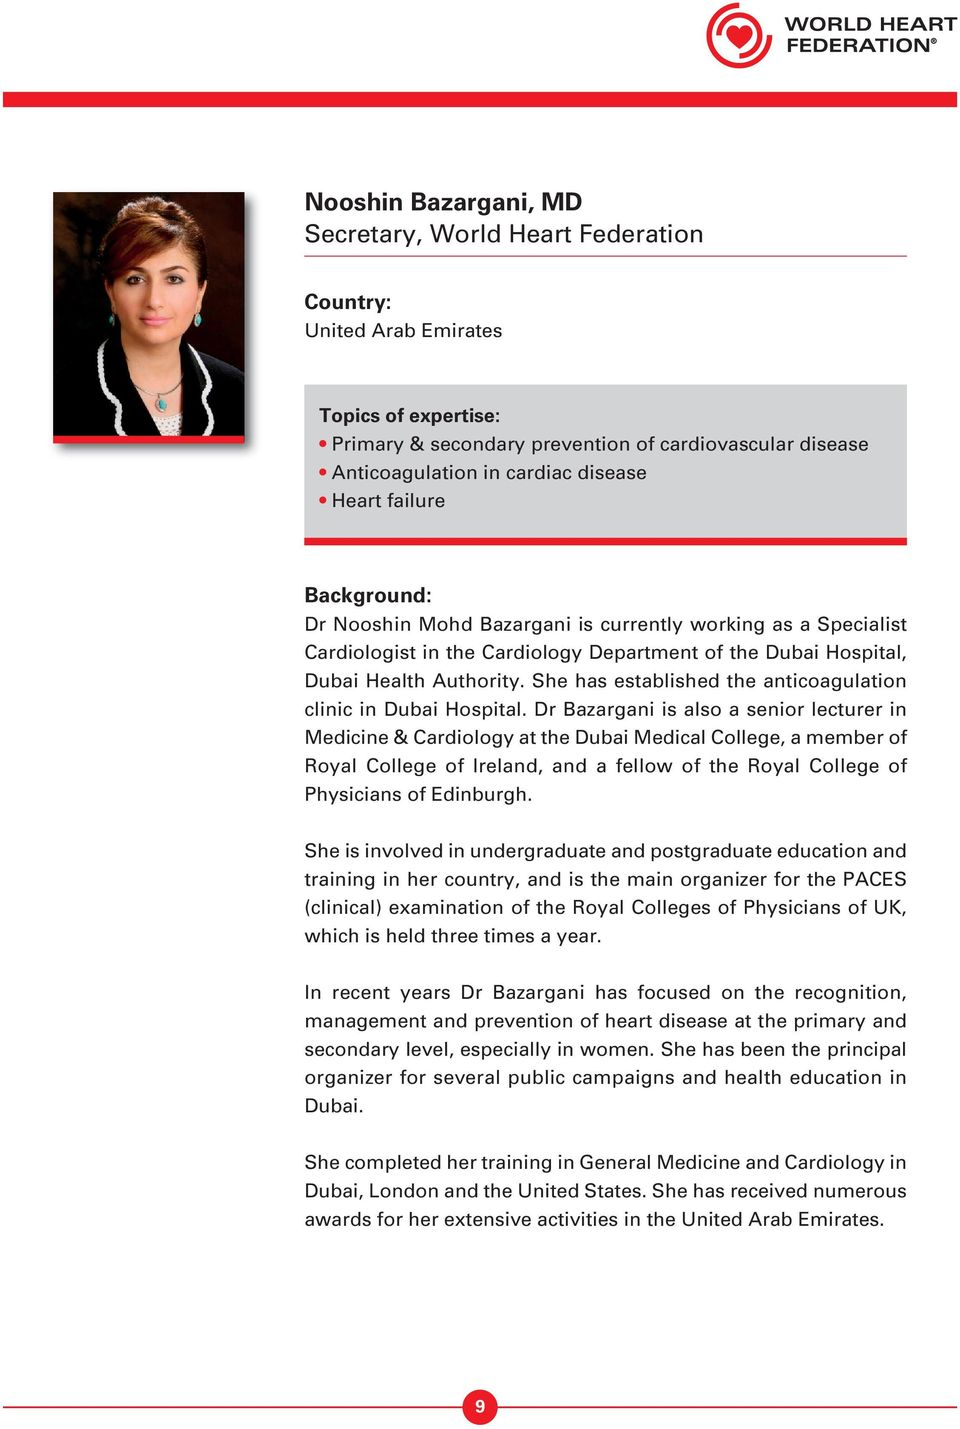 She has established the anticoagulation clinic in Dubai Hospital.